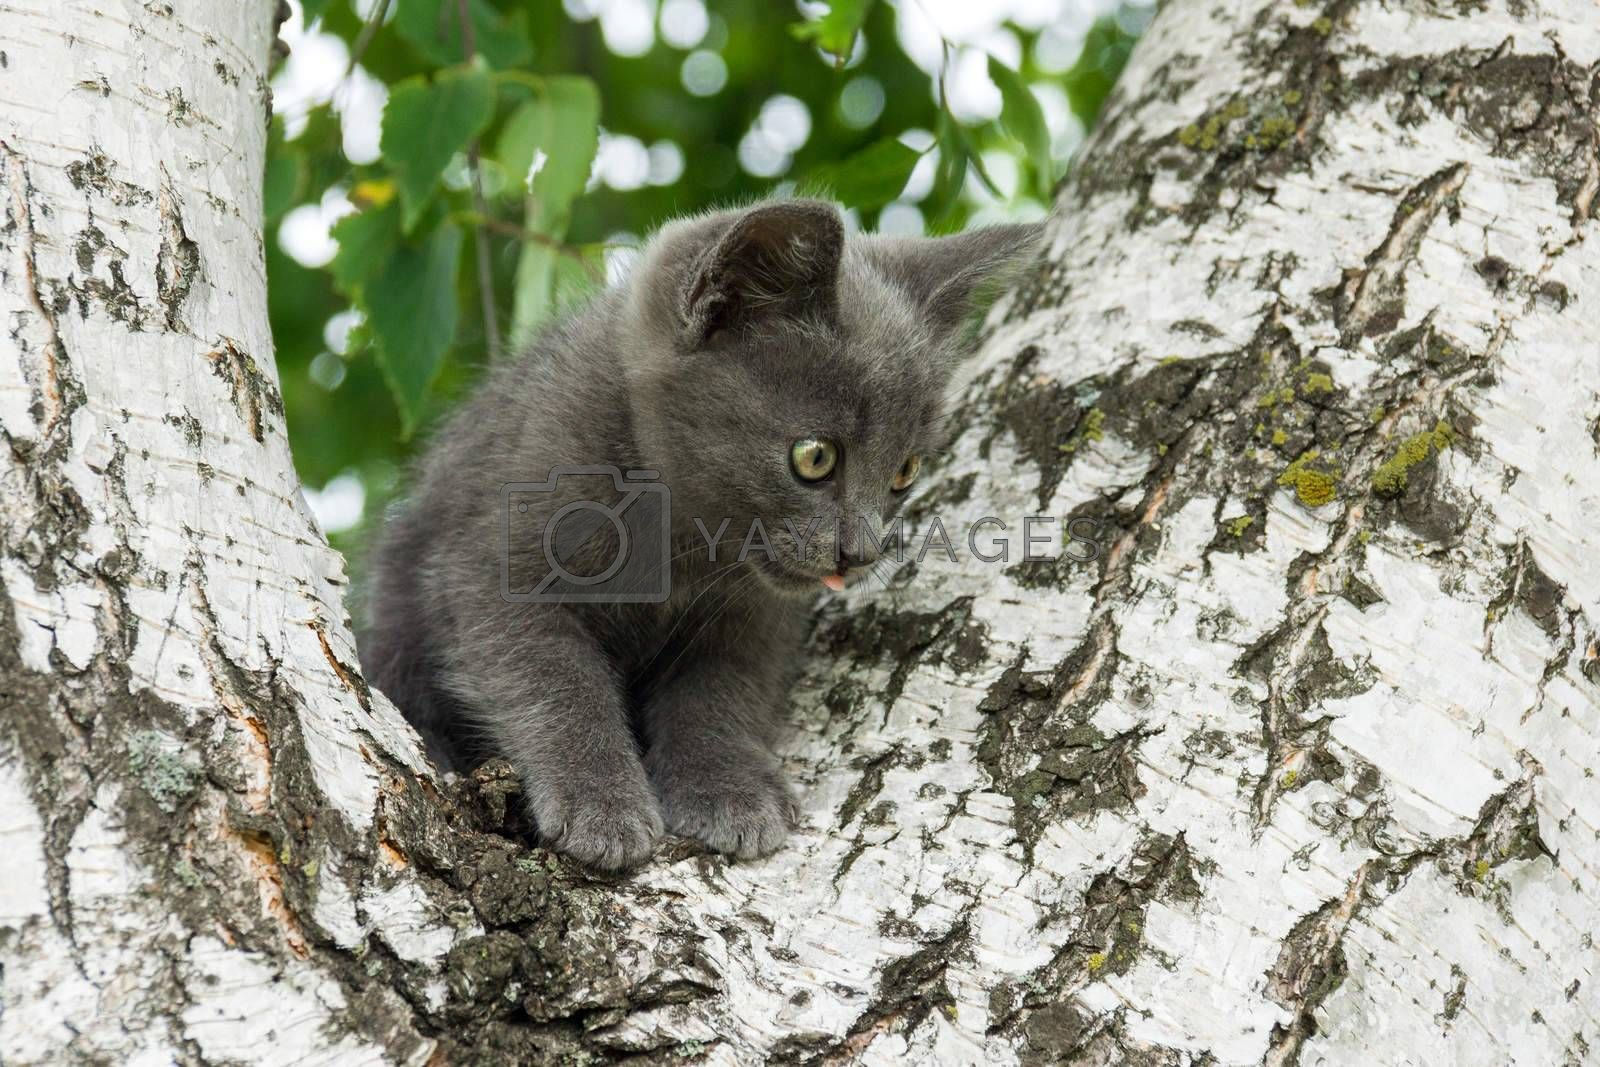 The photo depicts a kitten sitting in a tree